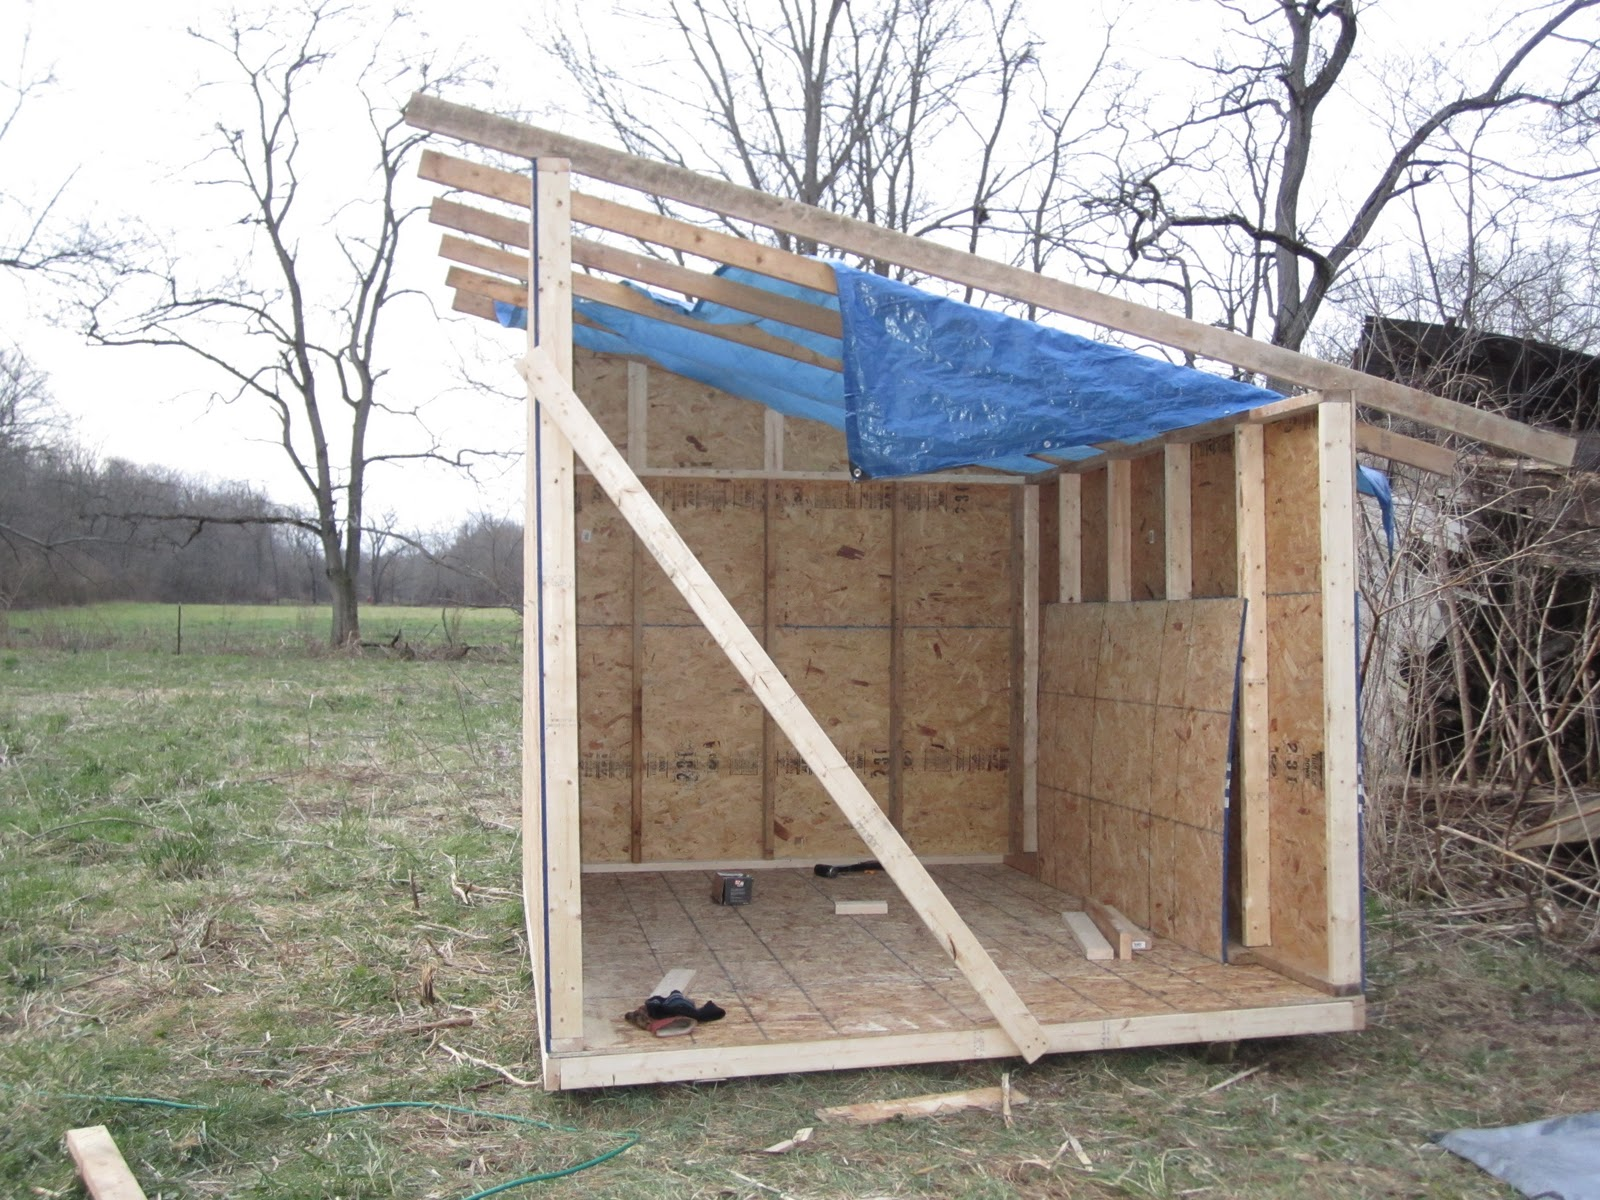 how to build a pump house shed | Discover Woodworking Projects